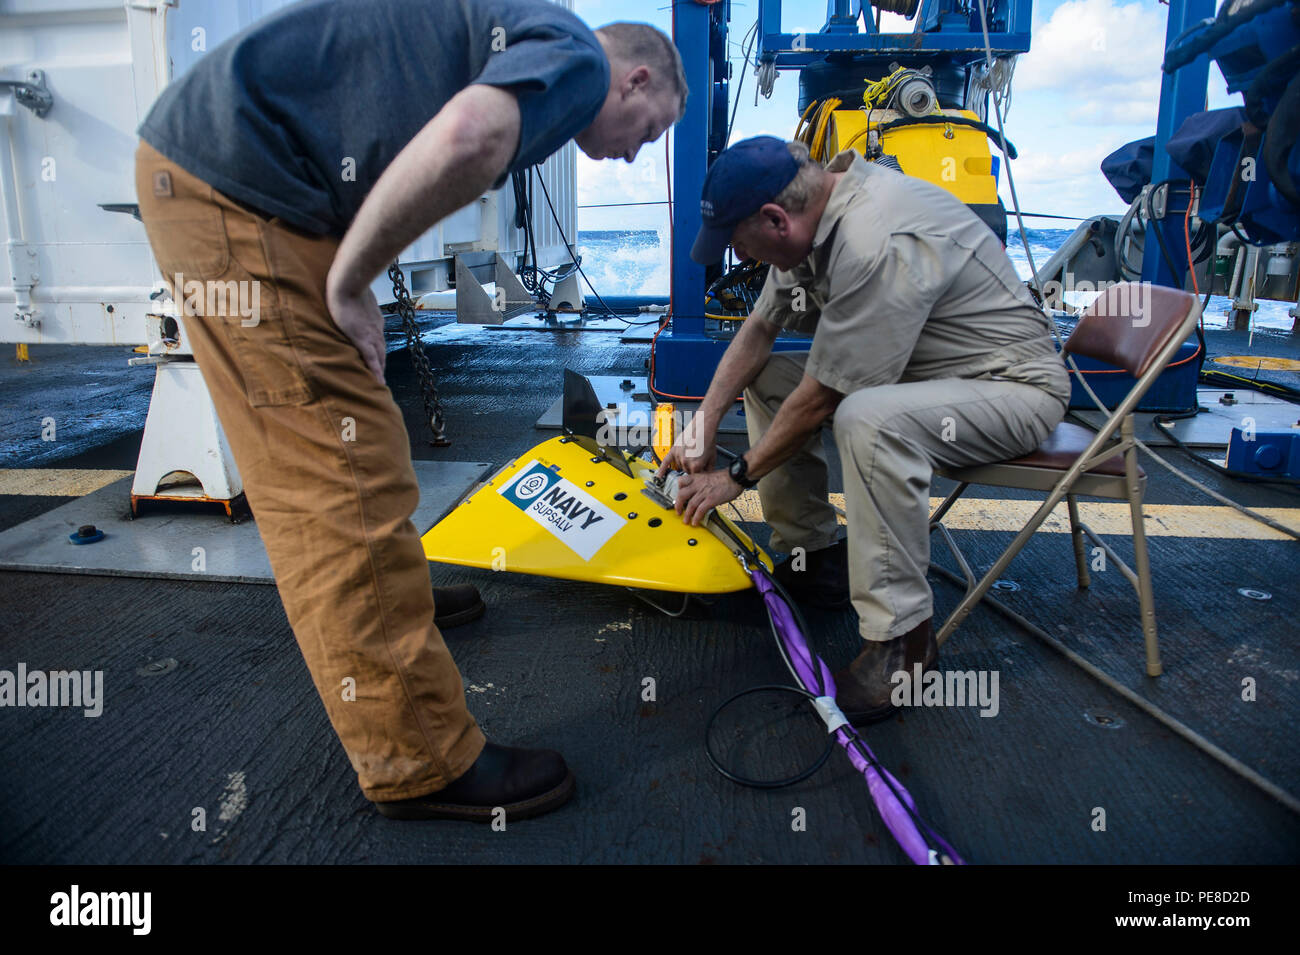 151023-N-RZ218-076   BAHAMAS (Oct. 23, 2015) Ric Sasse (left) and Curt Newport (right), contractors with Phoenix International Incorporated, prepare a tow pinger locater 25 (TPL 25) for the upcoming salvage mission aboard USNS Apache (T-ATF 172). USNS Apache departed Norfolk, Va., Oct. 19, to begin searching for wreckage from the missing U.S. Flagged merchant vessel El Faro. The ship is equipped with several pieces of underwater search equipment, including a voyage data recorder locator, side-scan sonar and an underwater remote operated vehicle. The Navy's mission will be to first locate the s - Stock Image